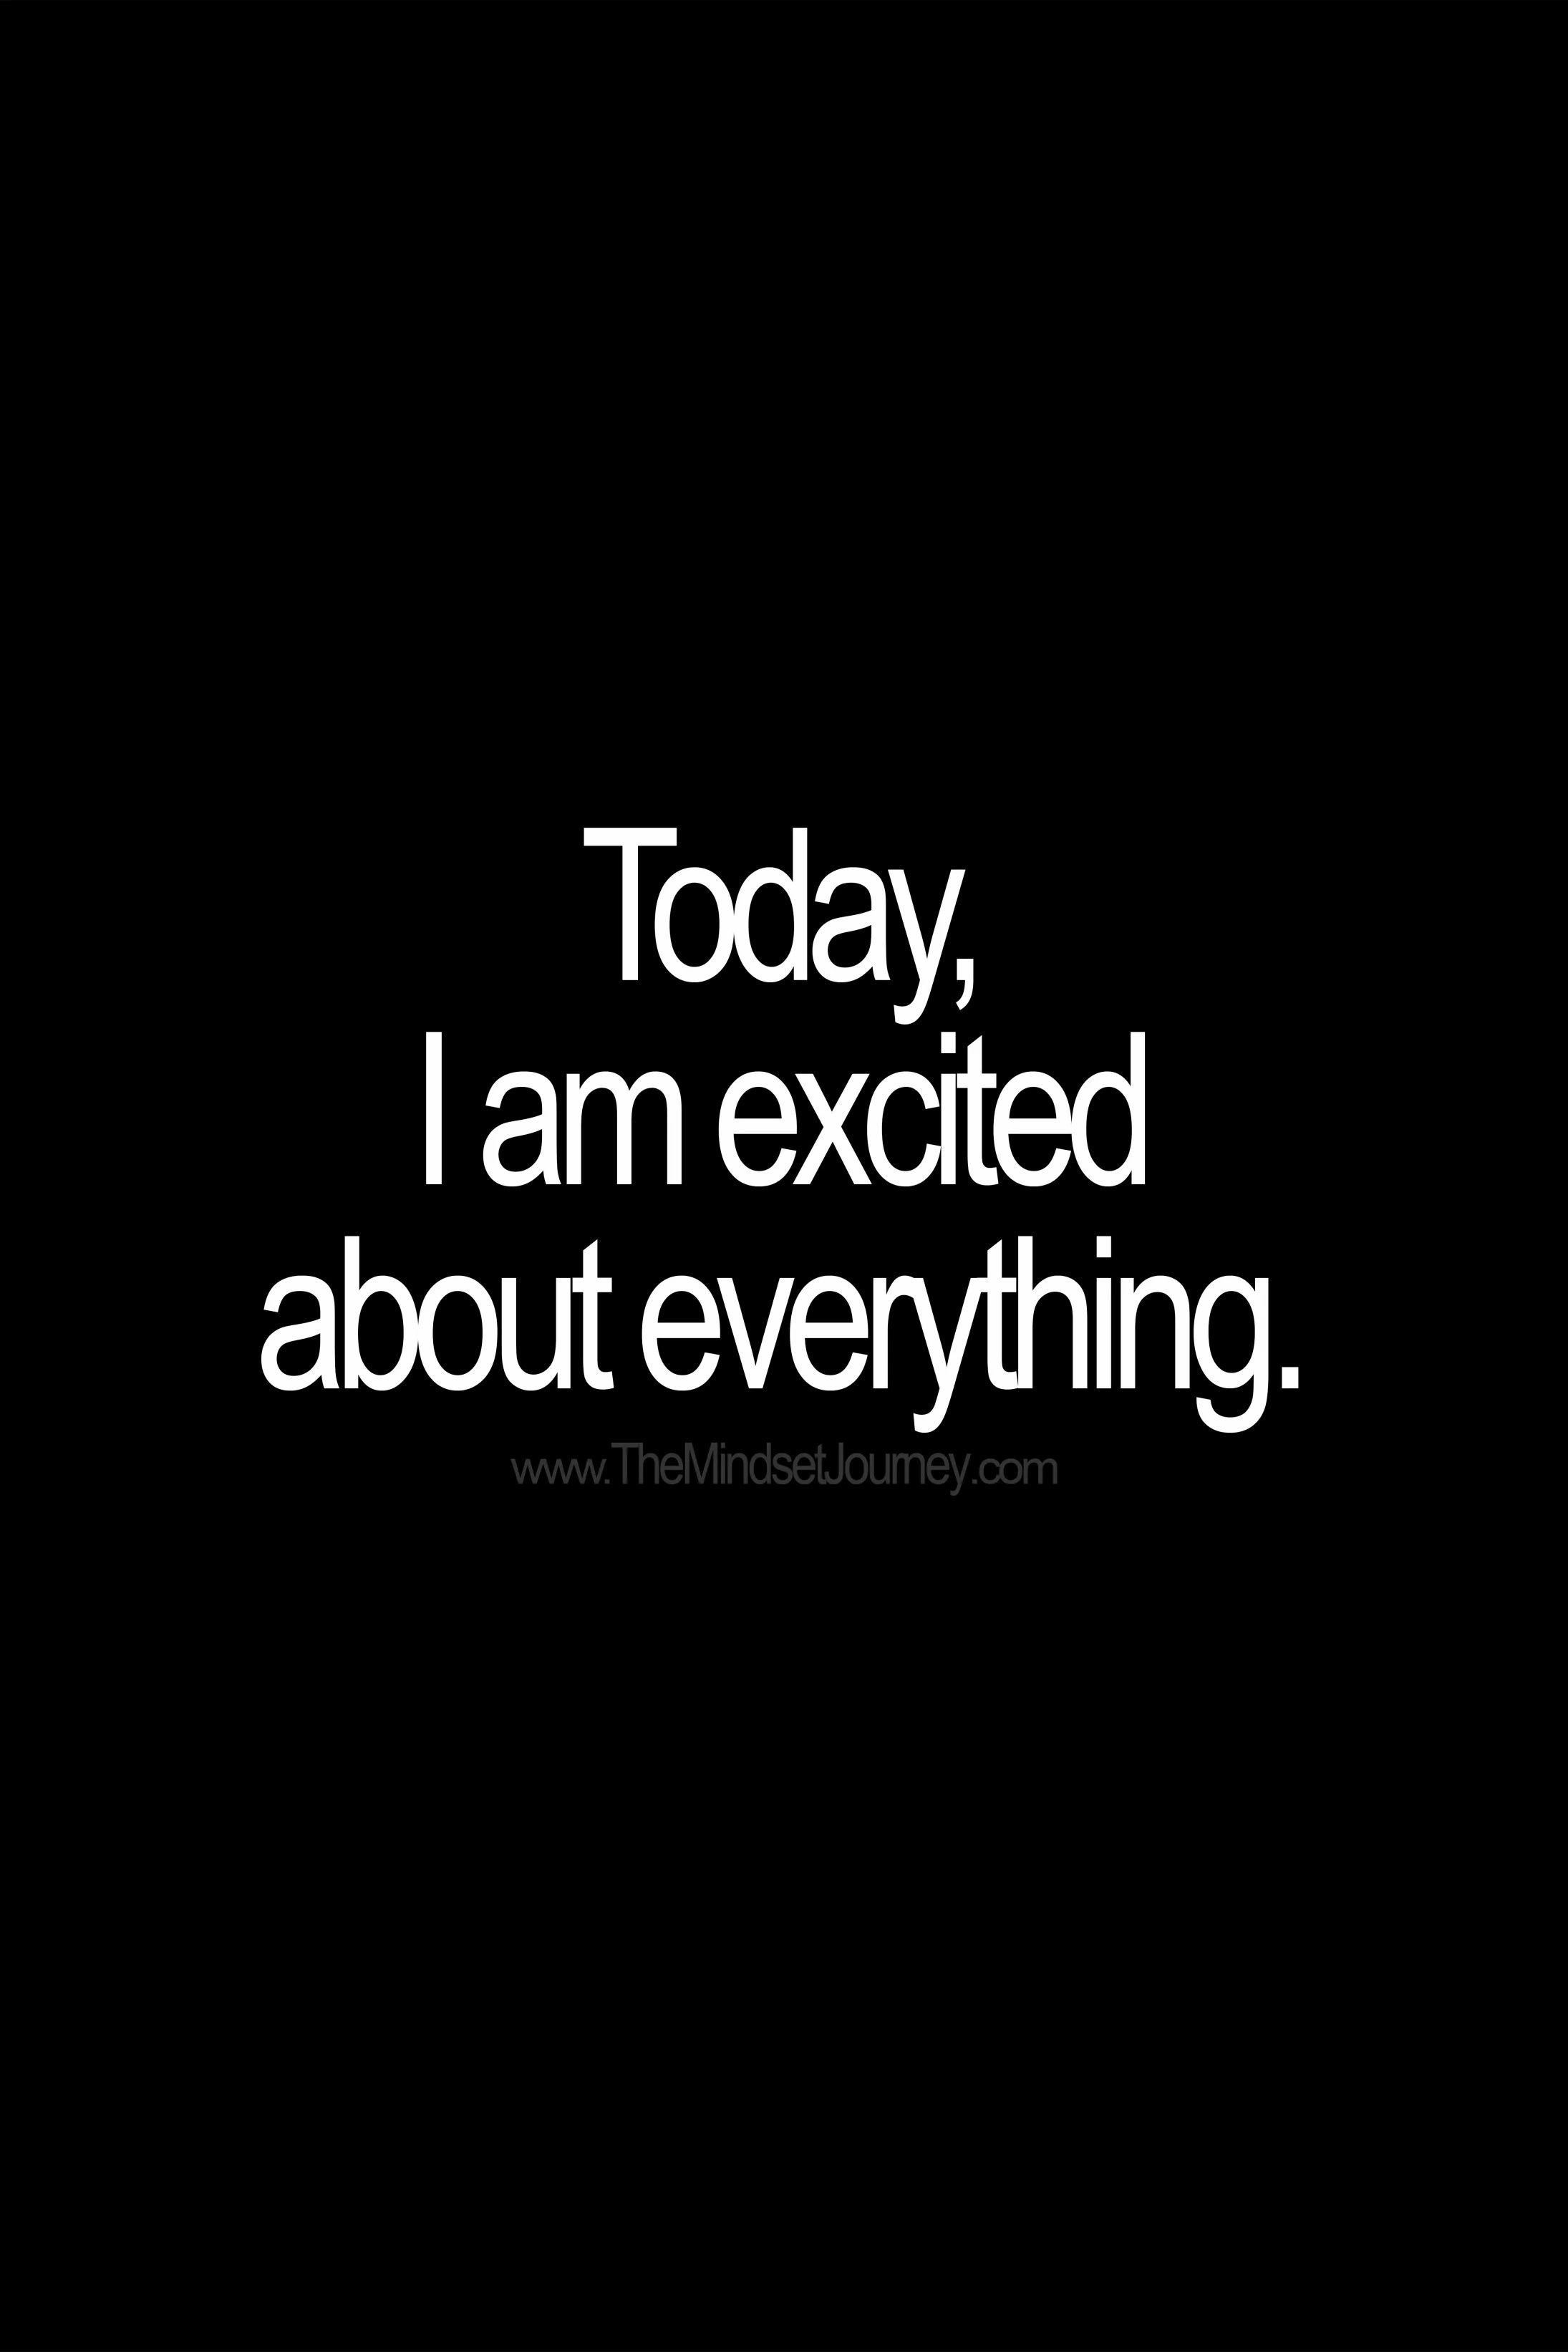 Today, I am excited about everything. - The Mindset Journey in